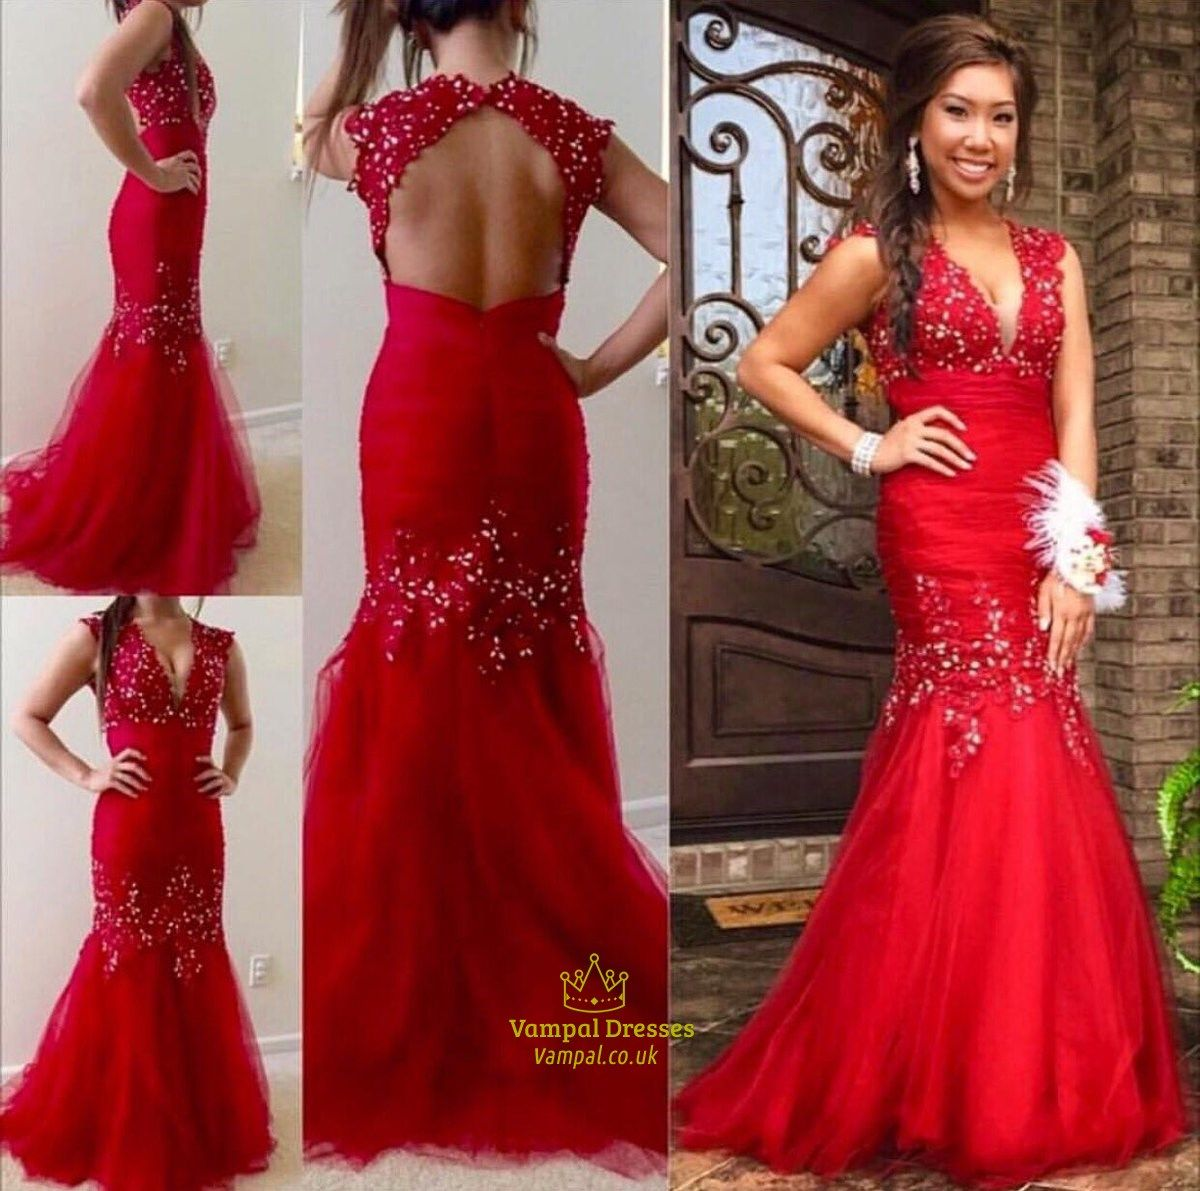 3d1fb9b7304c vampal.co.uk Offers High Quality Red Beaded V-Neck Cap Sleeve Open Back  Illusion Mermaid Prom Dress,Priced At Only USD $193.00 (Free Shipping)